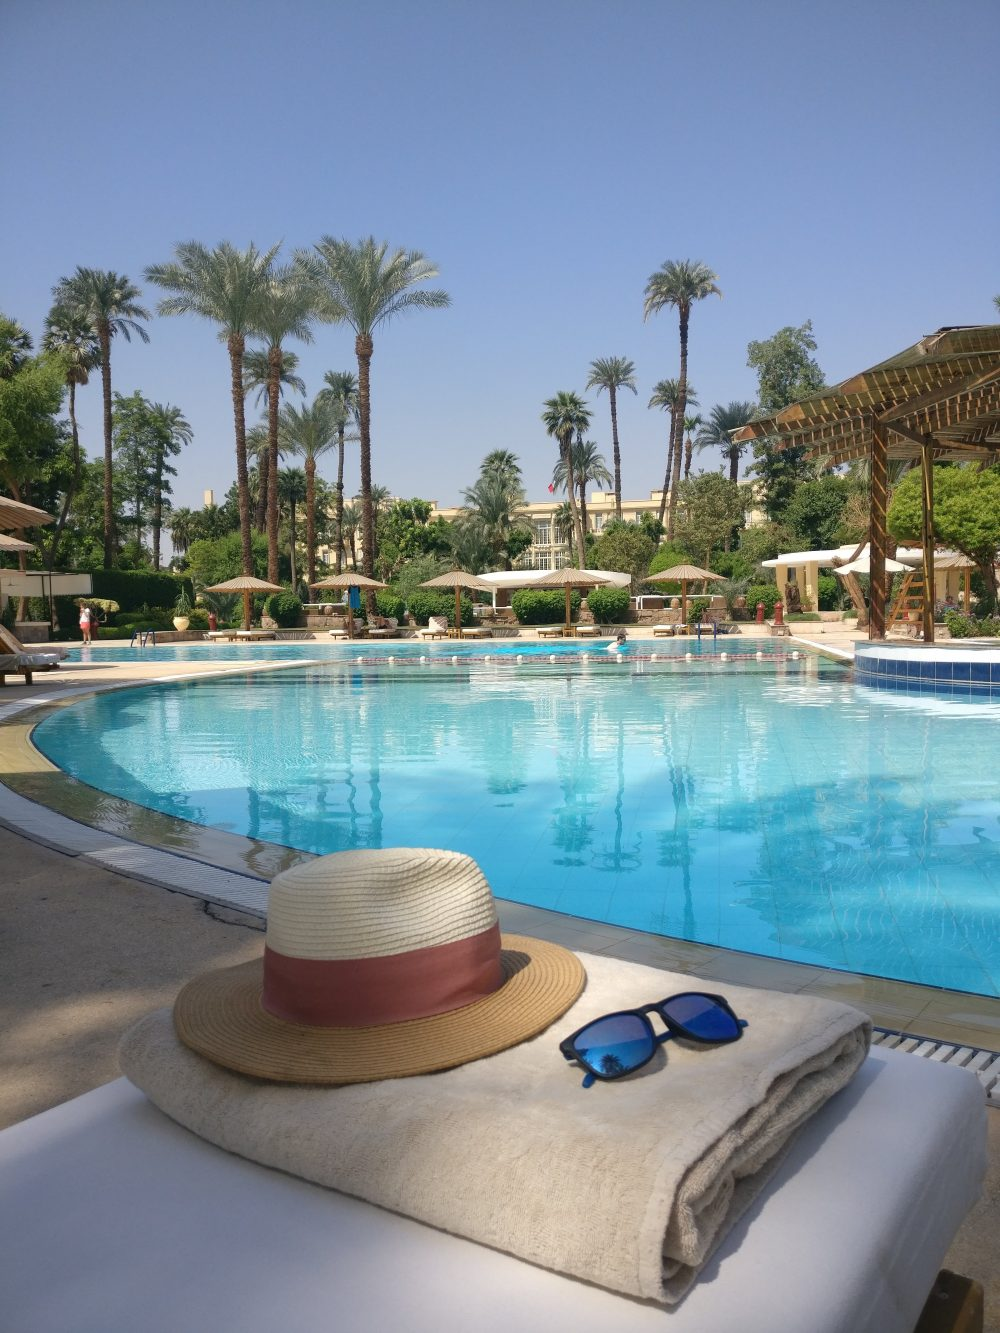 Where to stay in Egypt - Luxor